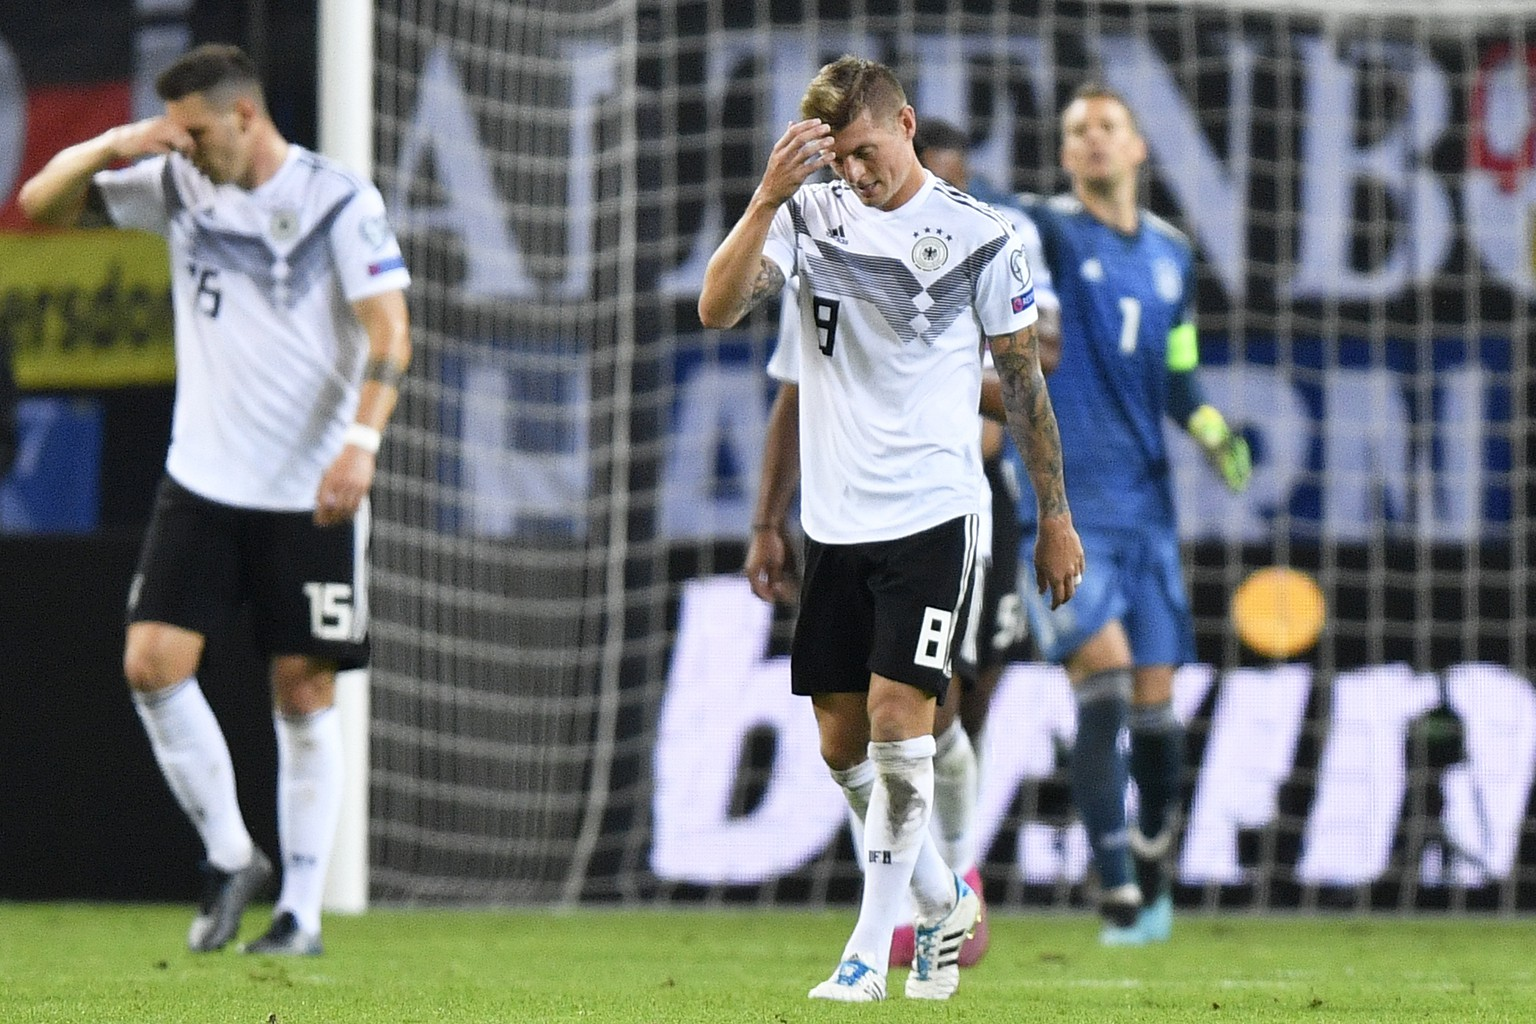 Germany's Toni Kroos reacts after the Netherland's second goal during the Euro 2020 group C qualifying soccer match between Germany and the Netherlands at the Volksparkstadion in Hamburg, Germany, Friday, Sept. 6, 2019. (AP Photo/Martin Meissner)